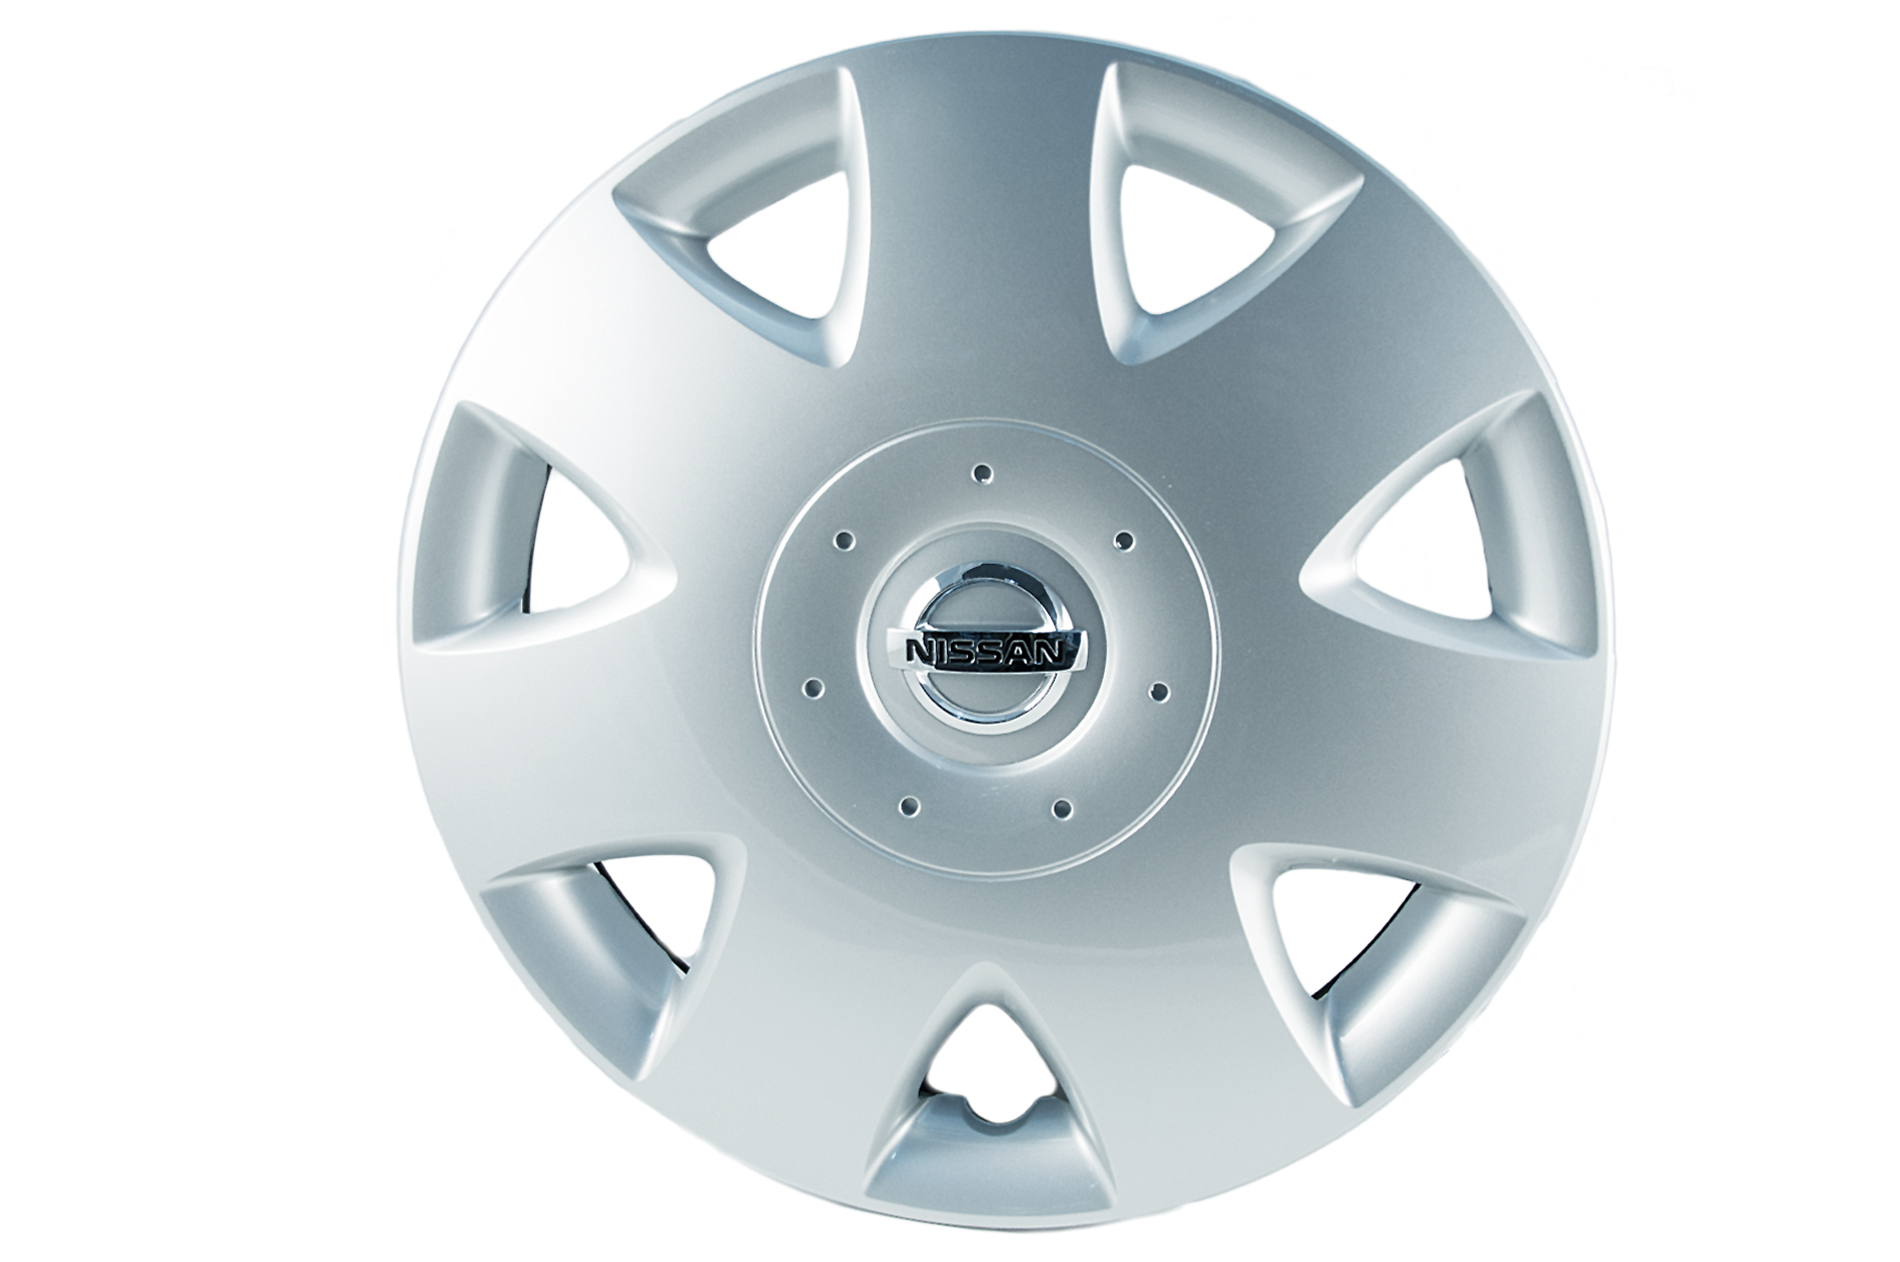 Nissan Genuine Almera N16 Car Hubcap Hub Cap 15 Wheel